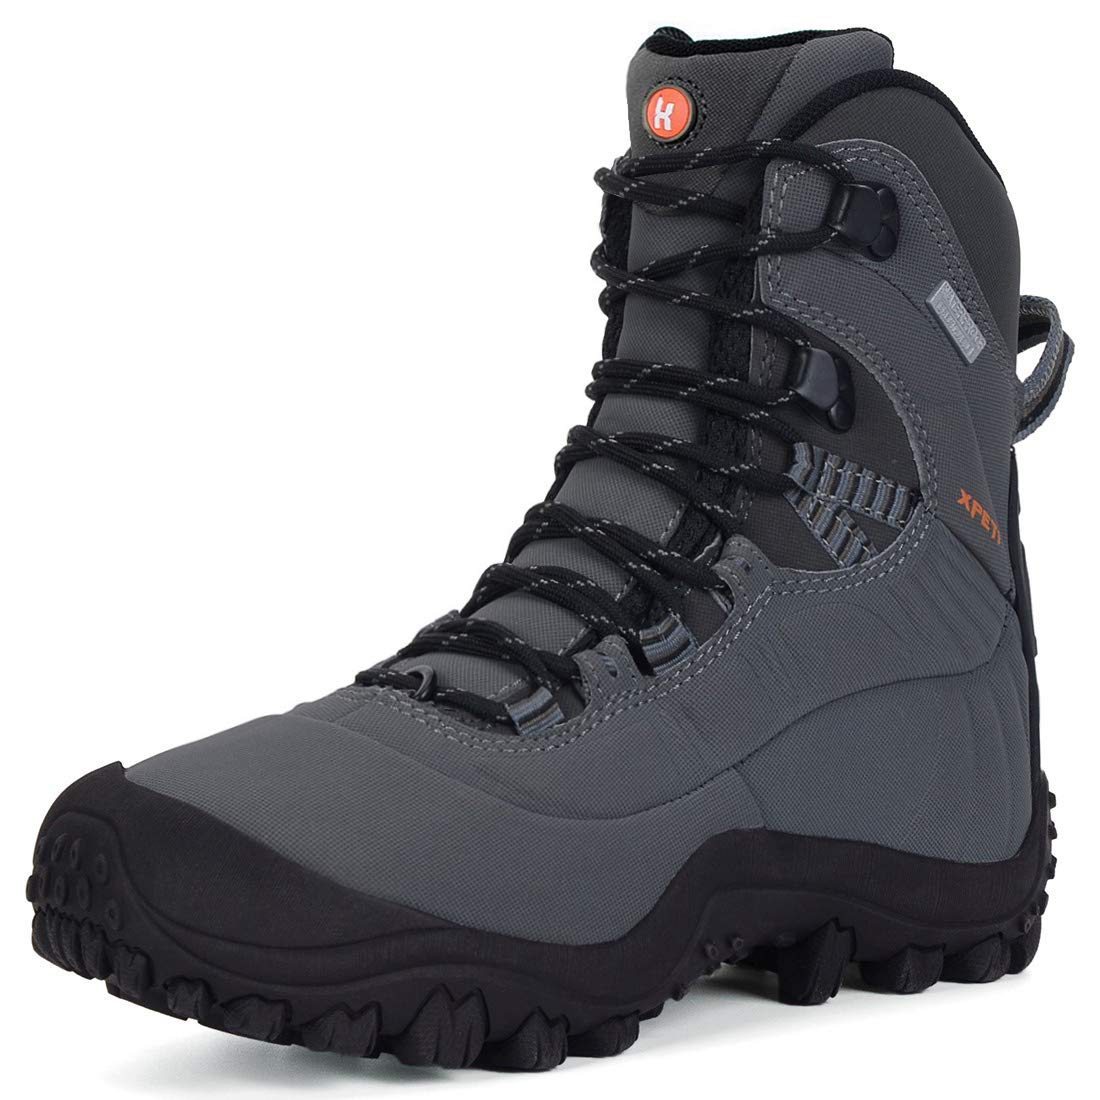 XPETI Women's Thermator Mid High-Top Waterproof Hiking Outdoor Boot